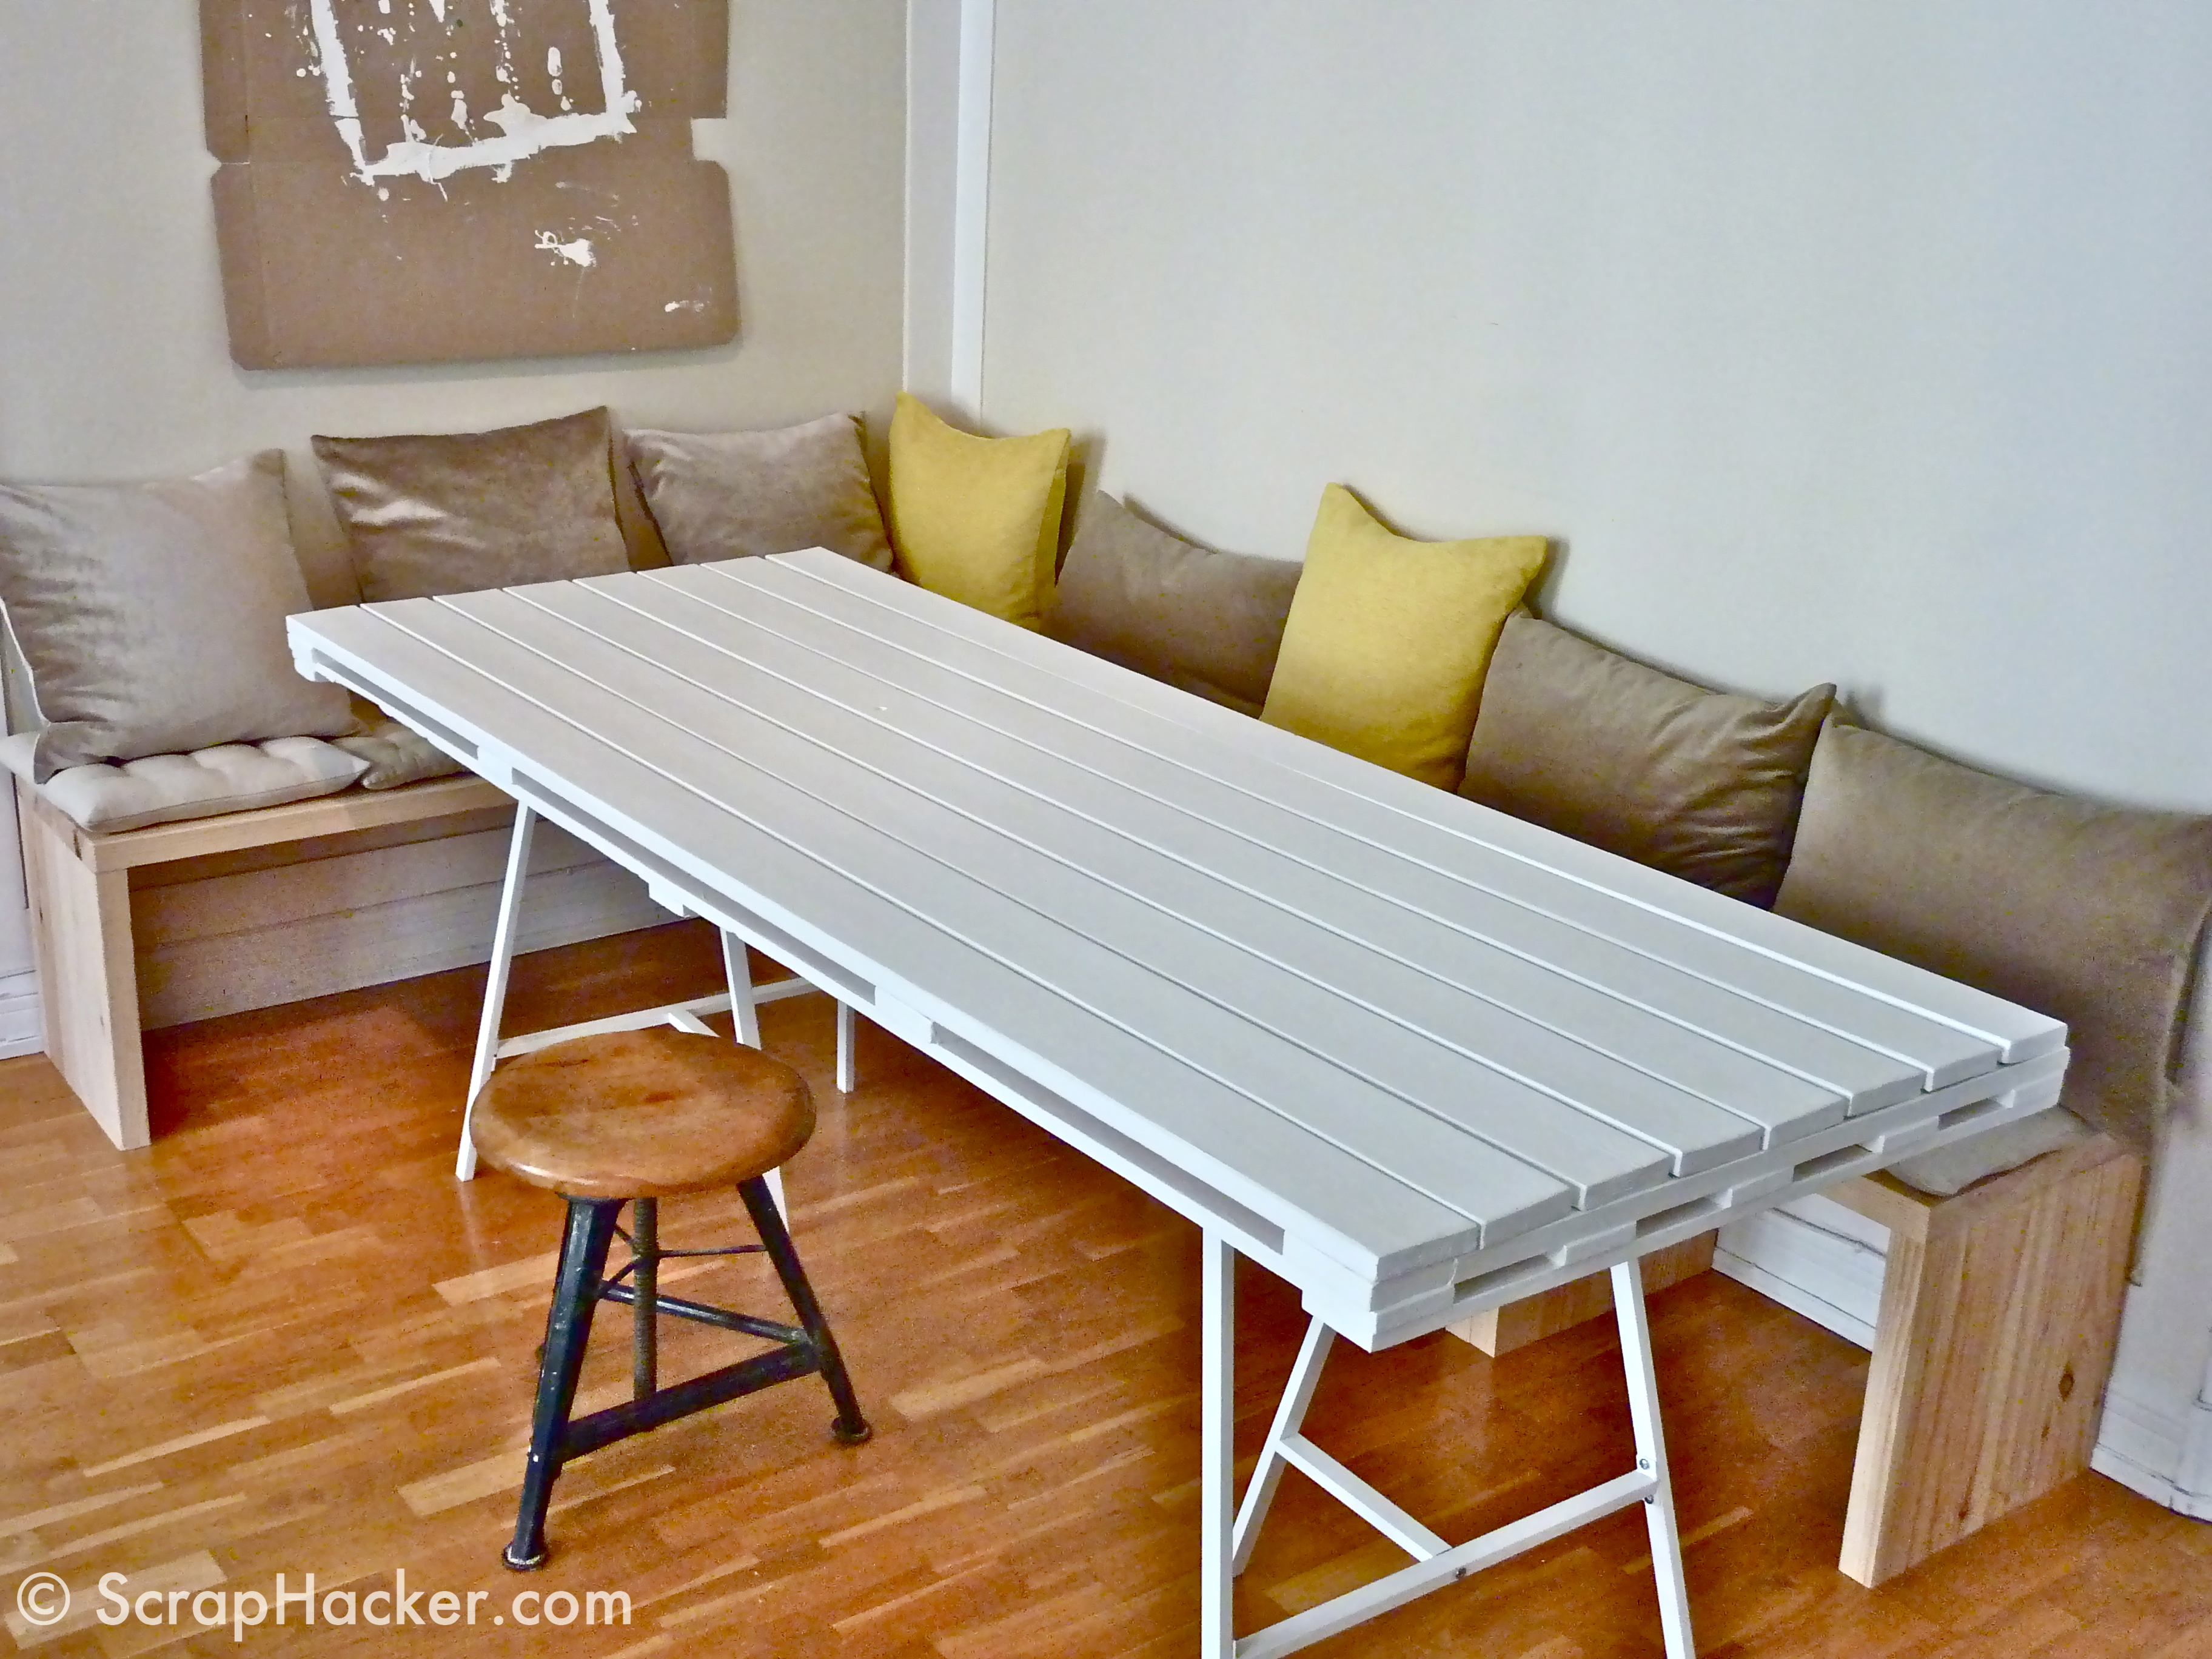 Diy Table With Pallets D I Y Pallet Dining Table A 10 Step Tutorial